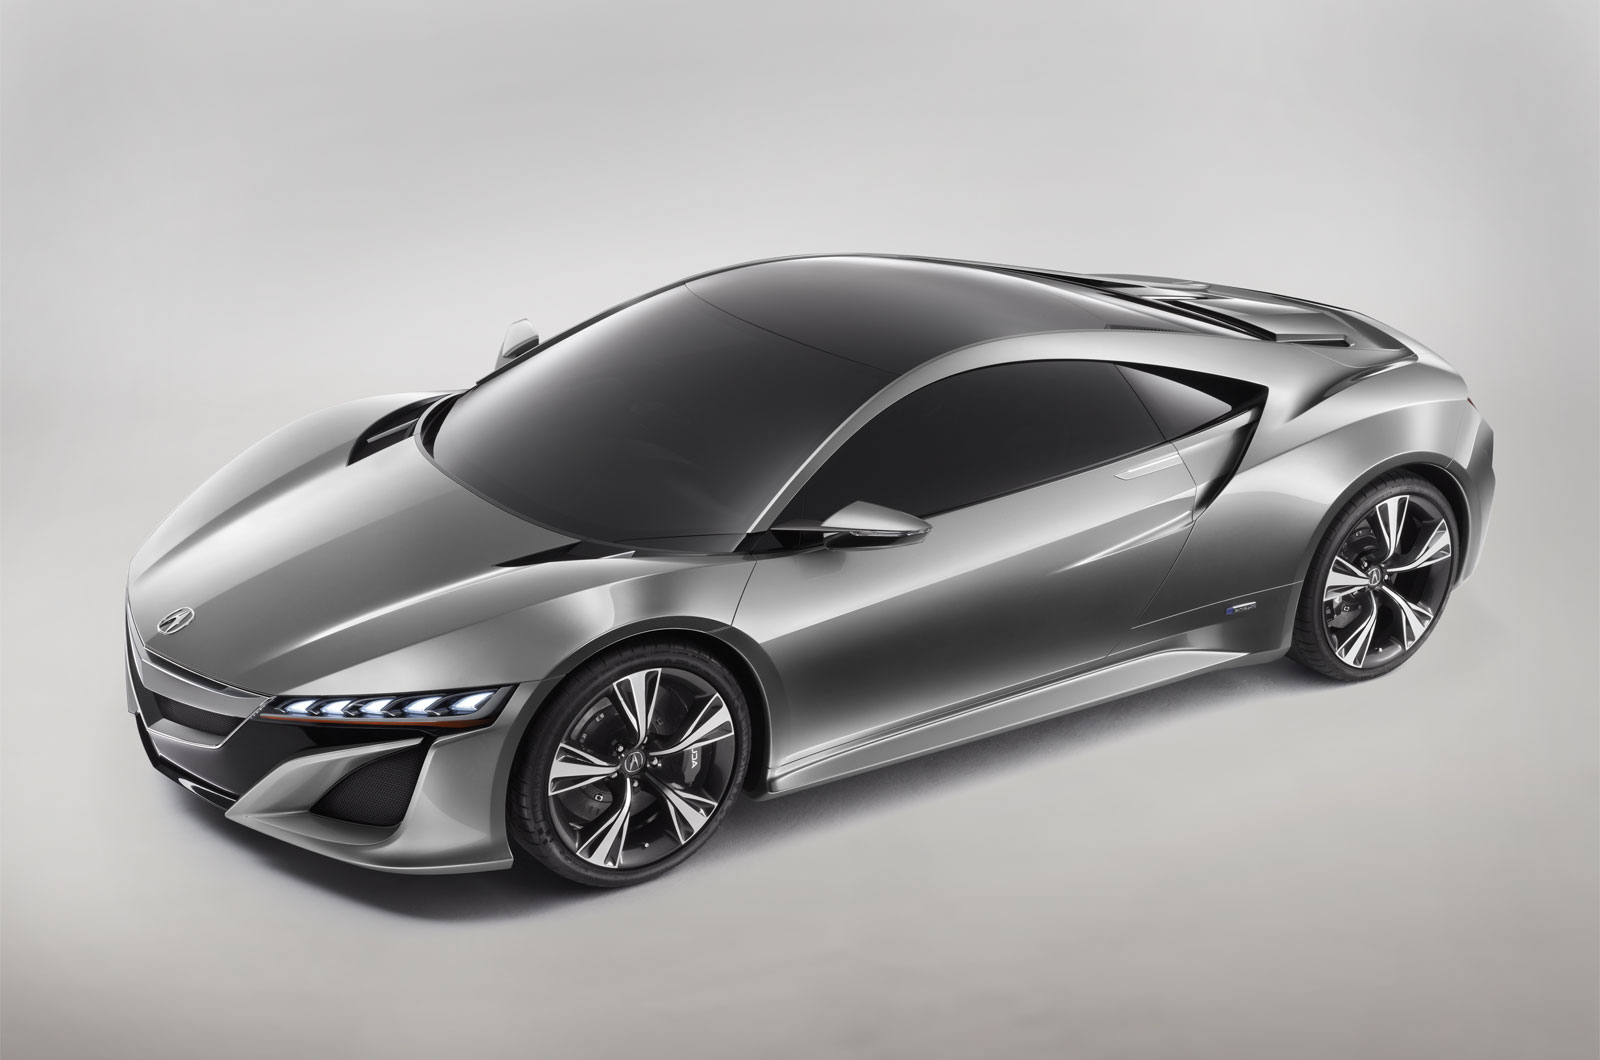 Acura nsx 2012 22610 hd wallpapers in cars imagesci com